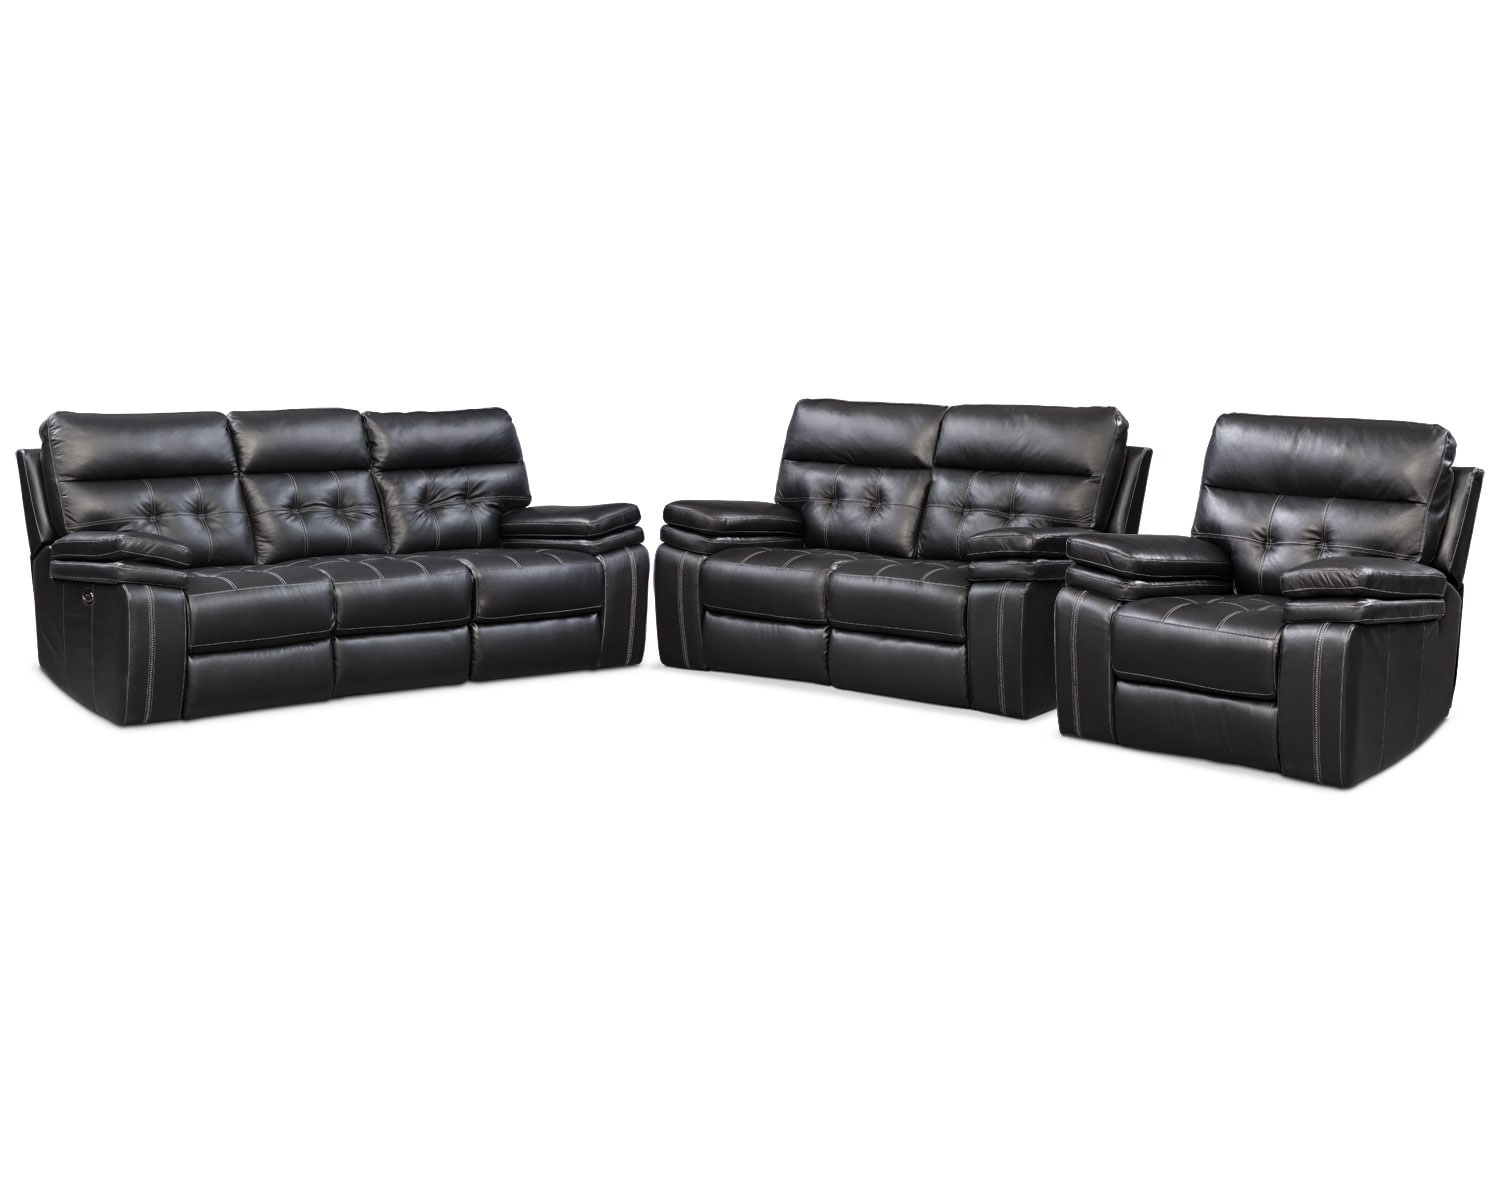 [The Brisco Black Power Reclining Collection]